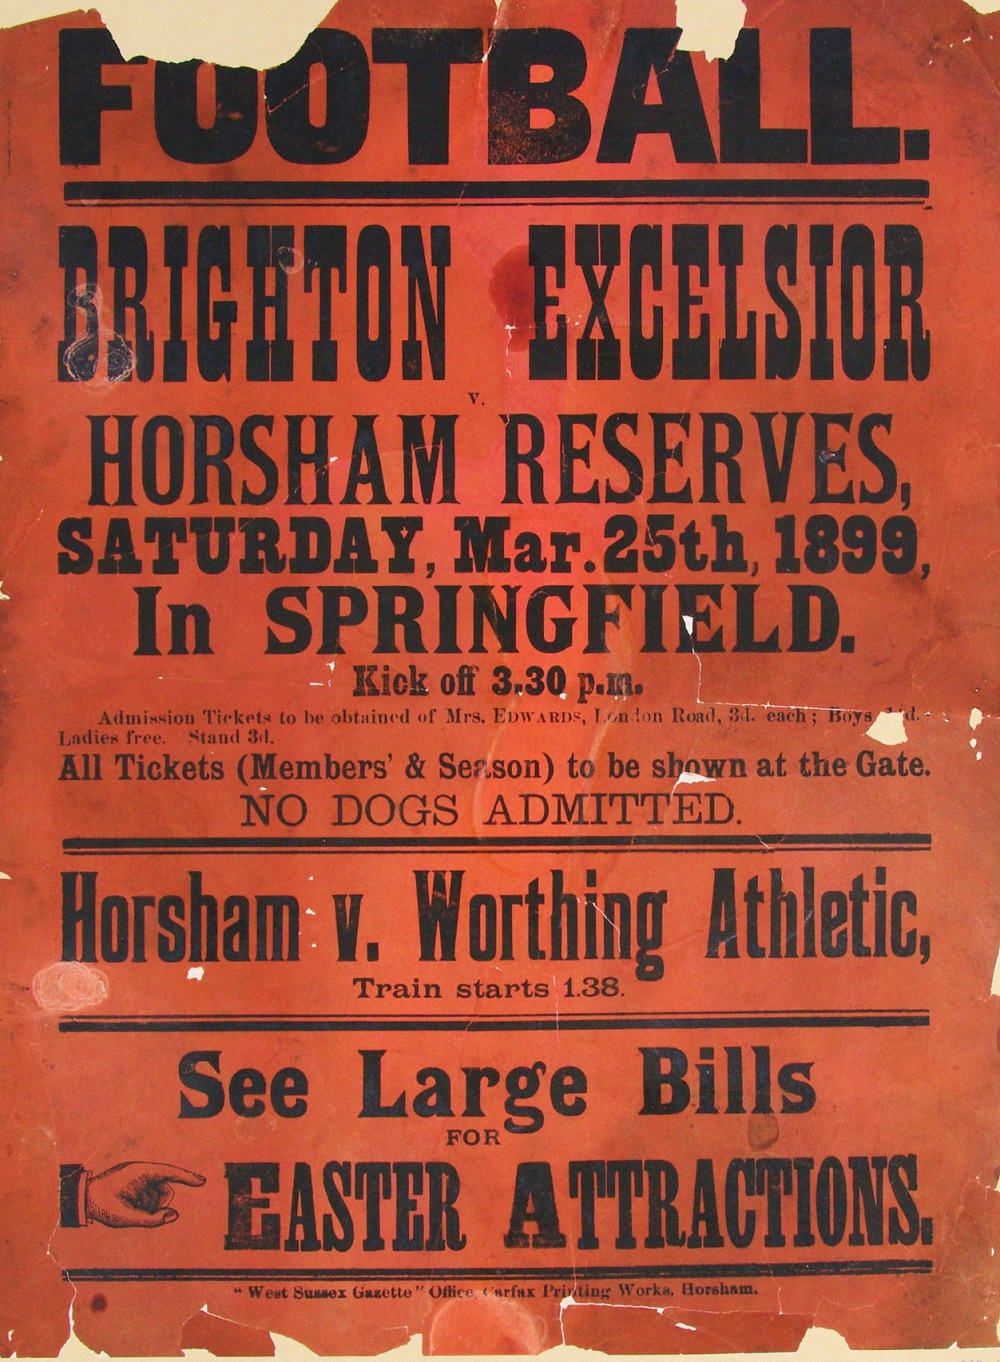 A poster advertising an 1889 game between Brighton Excelsior and Horsham Reserves